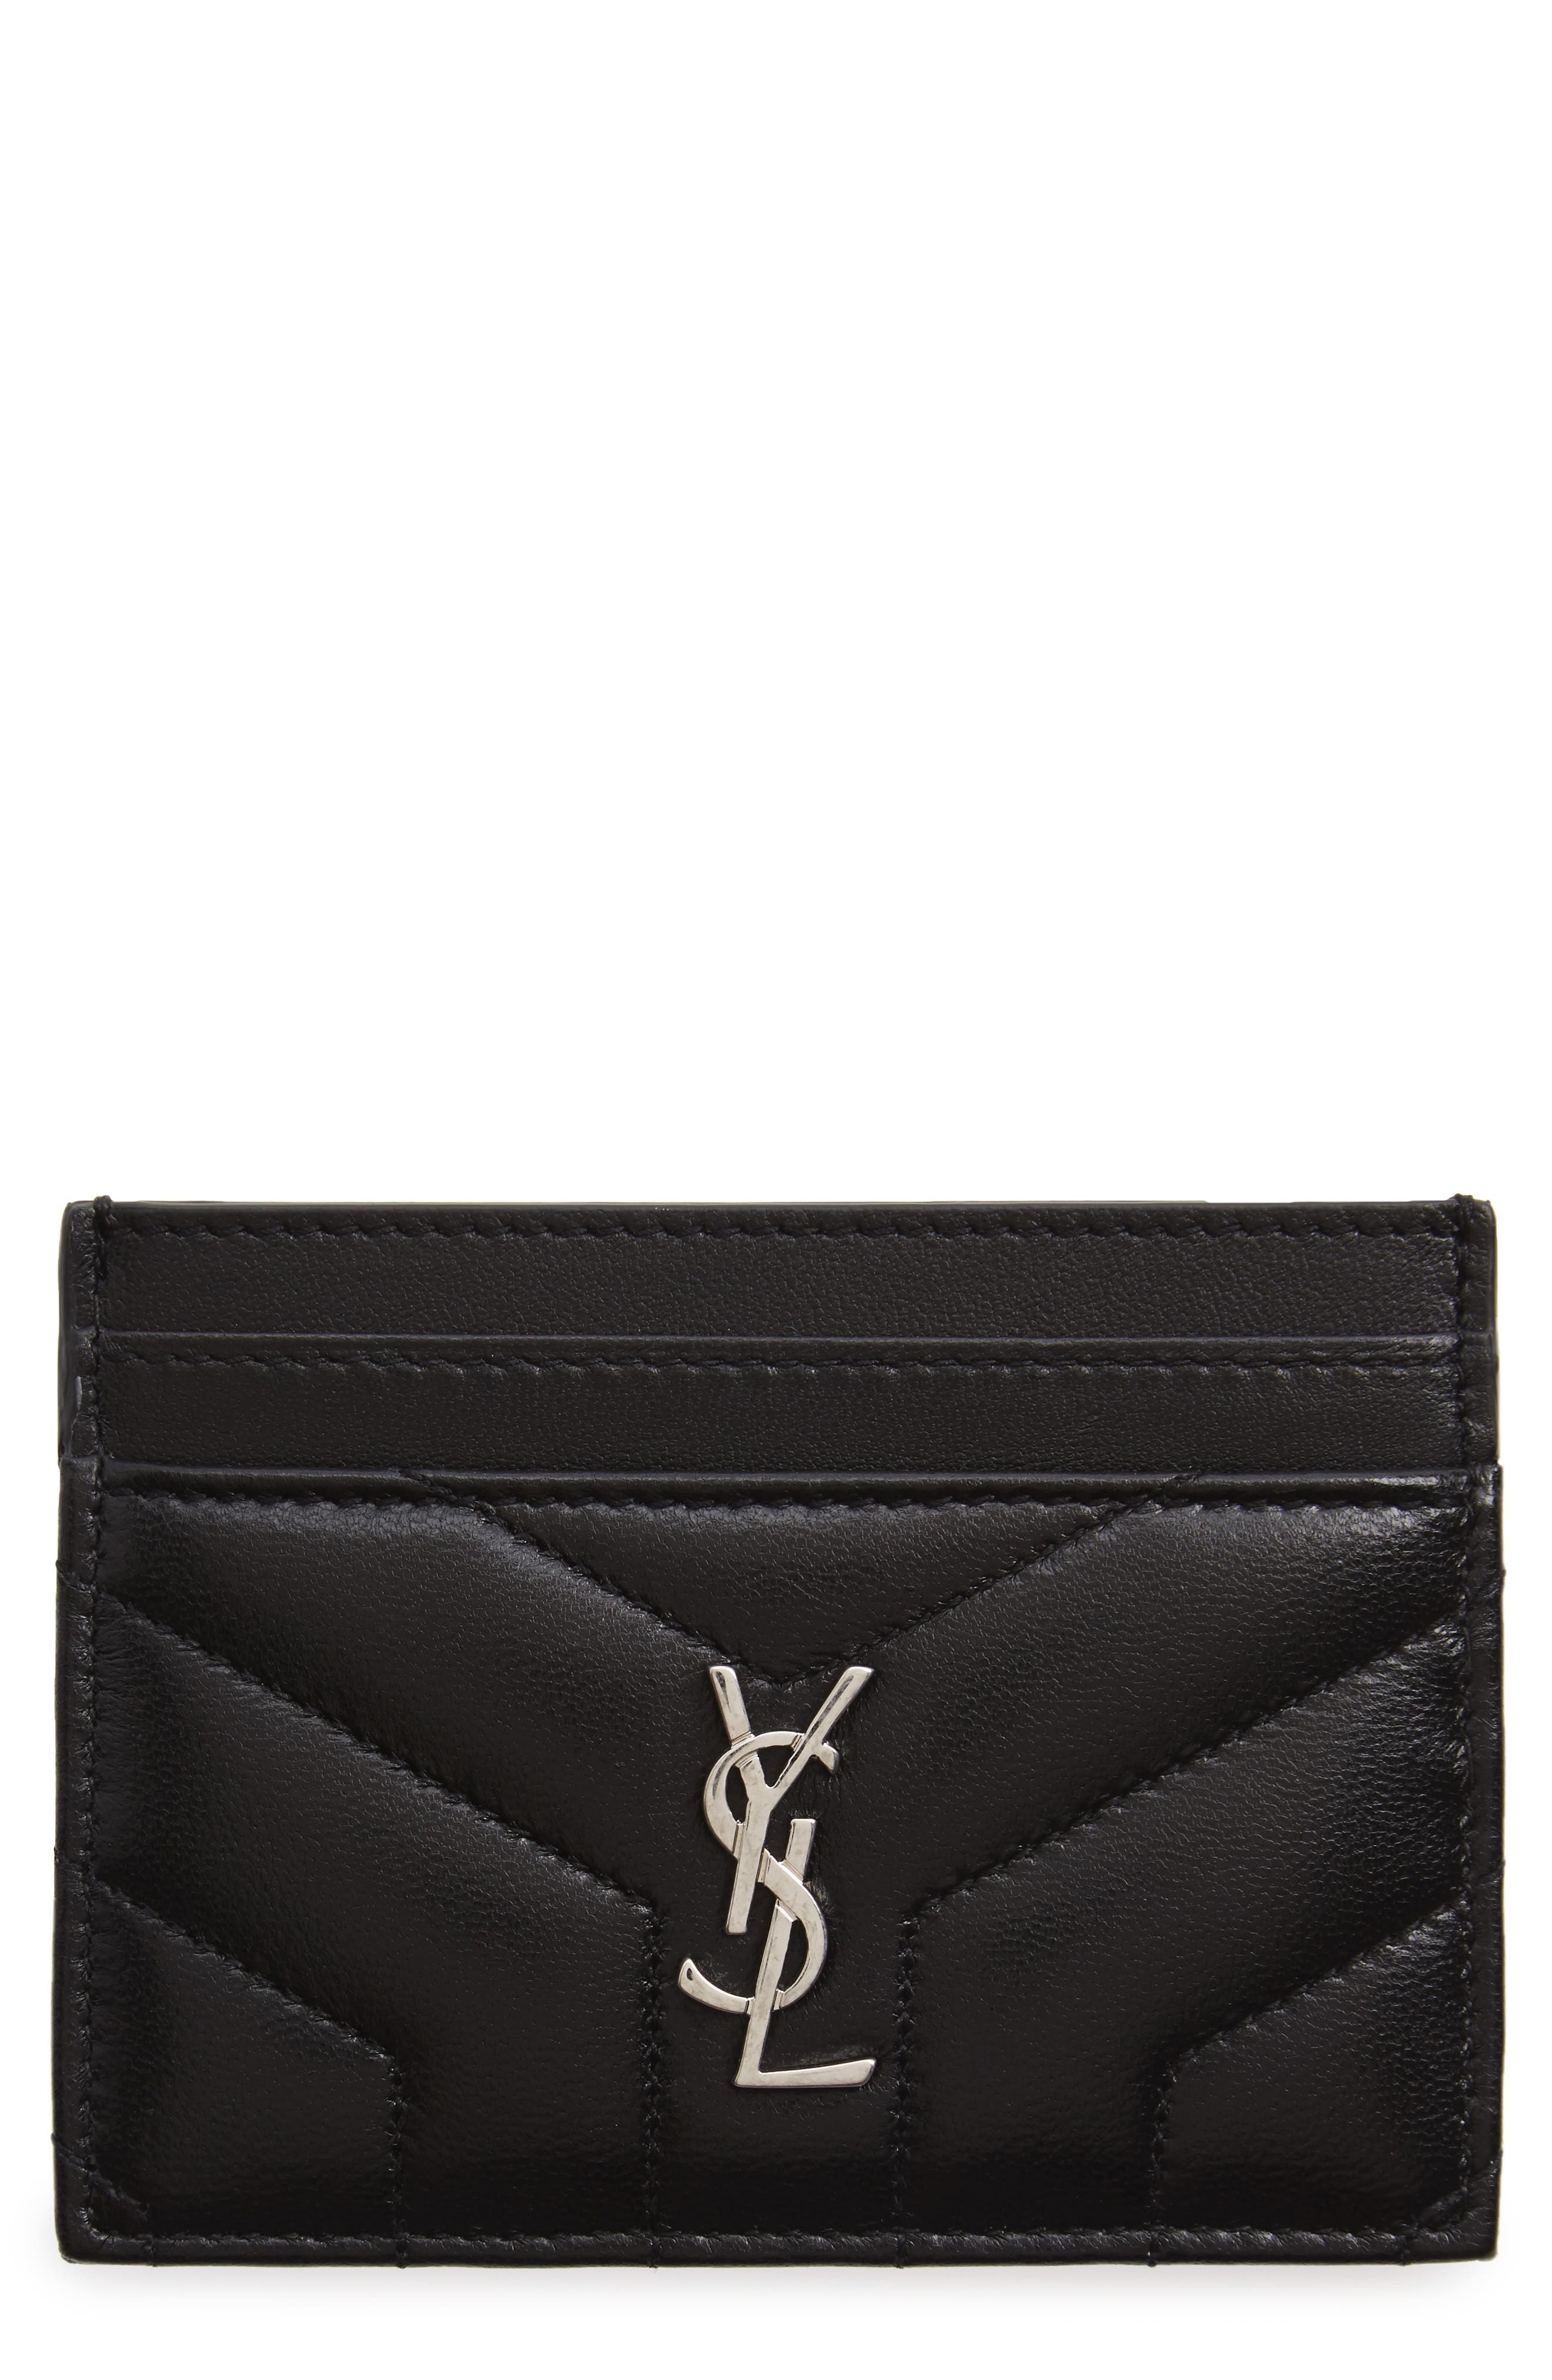 Loulou Monogram Quilted Leather Credit Card Case,                             Main thumbnail 1, color,                             NOIR